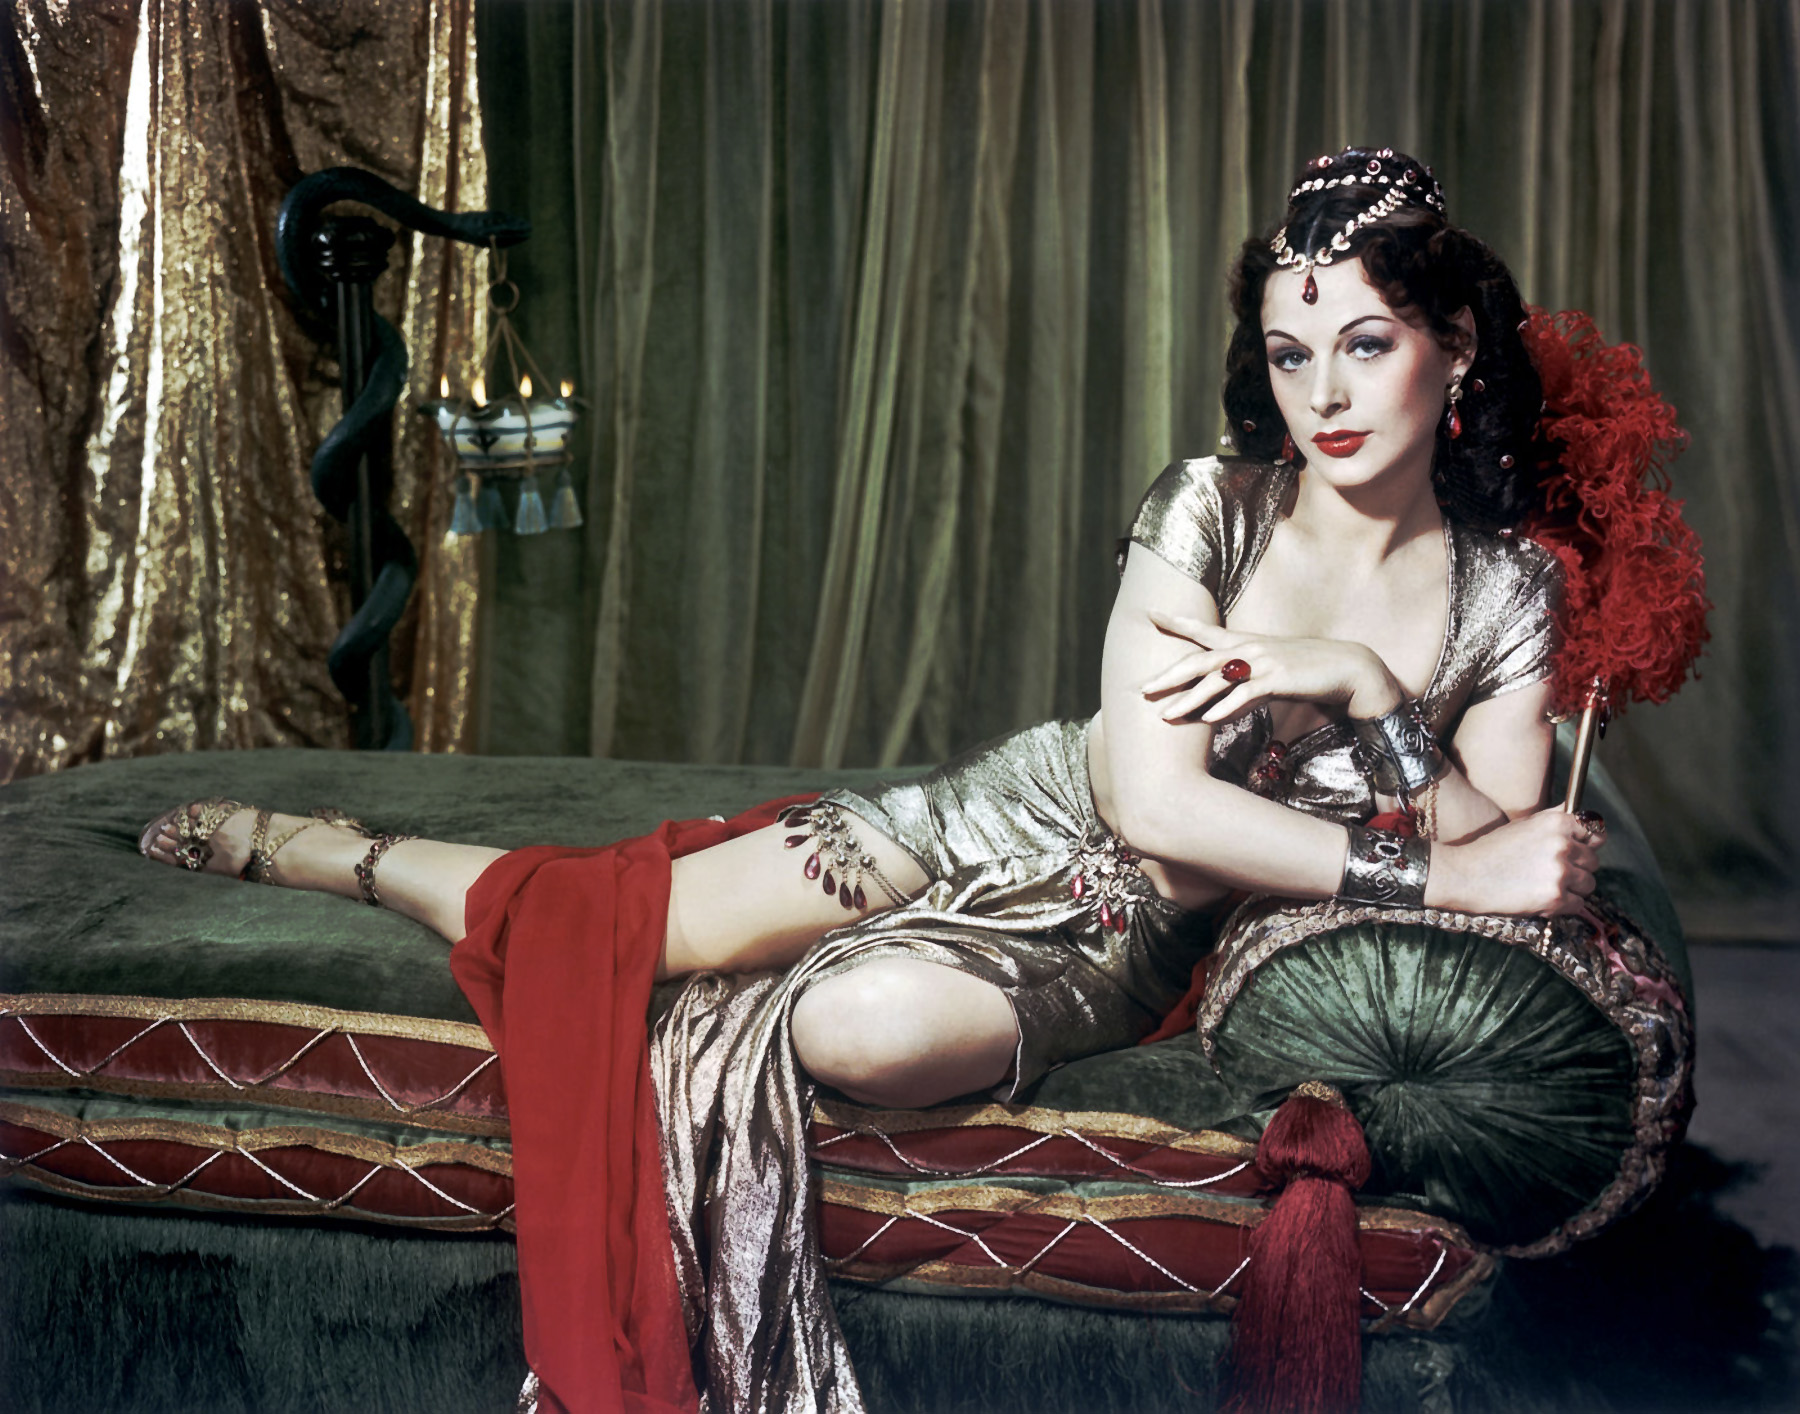 http://www.doctormacro.com/Images/Lamarr,%20Hedy/Annex/Annex%20-%20Lamarr,%20Hedy%20(Samson%20and%20Delilah)_02.jpg